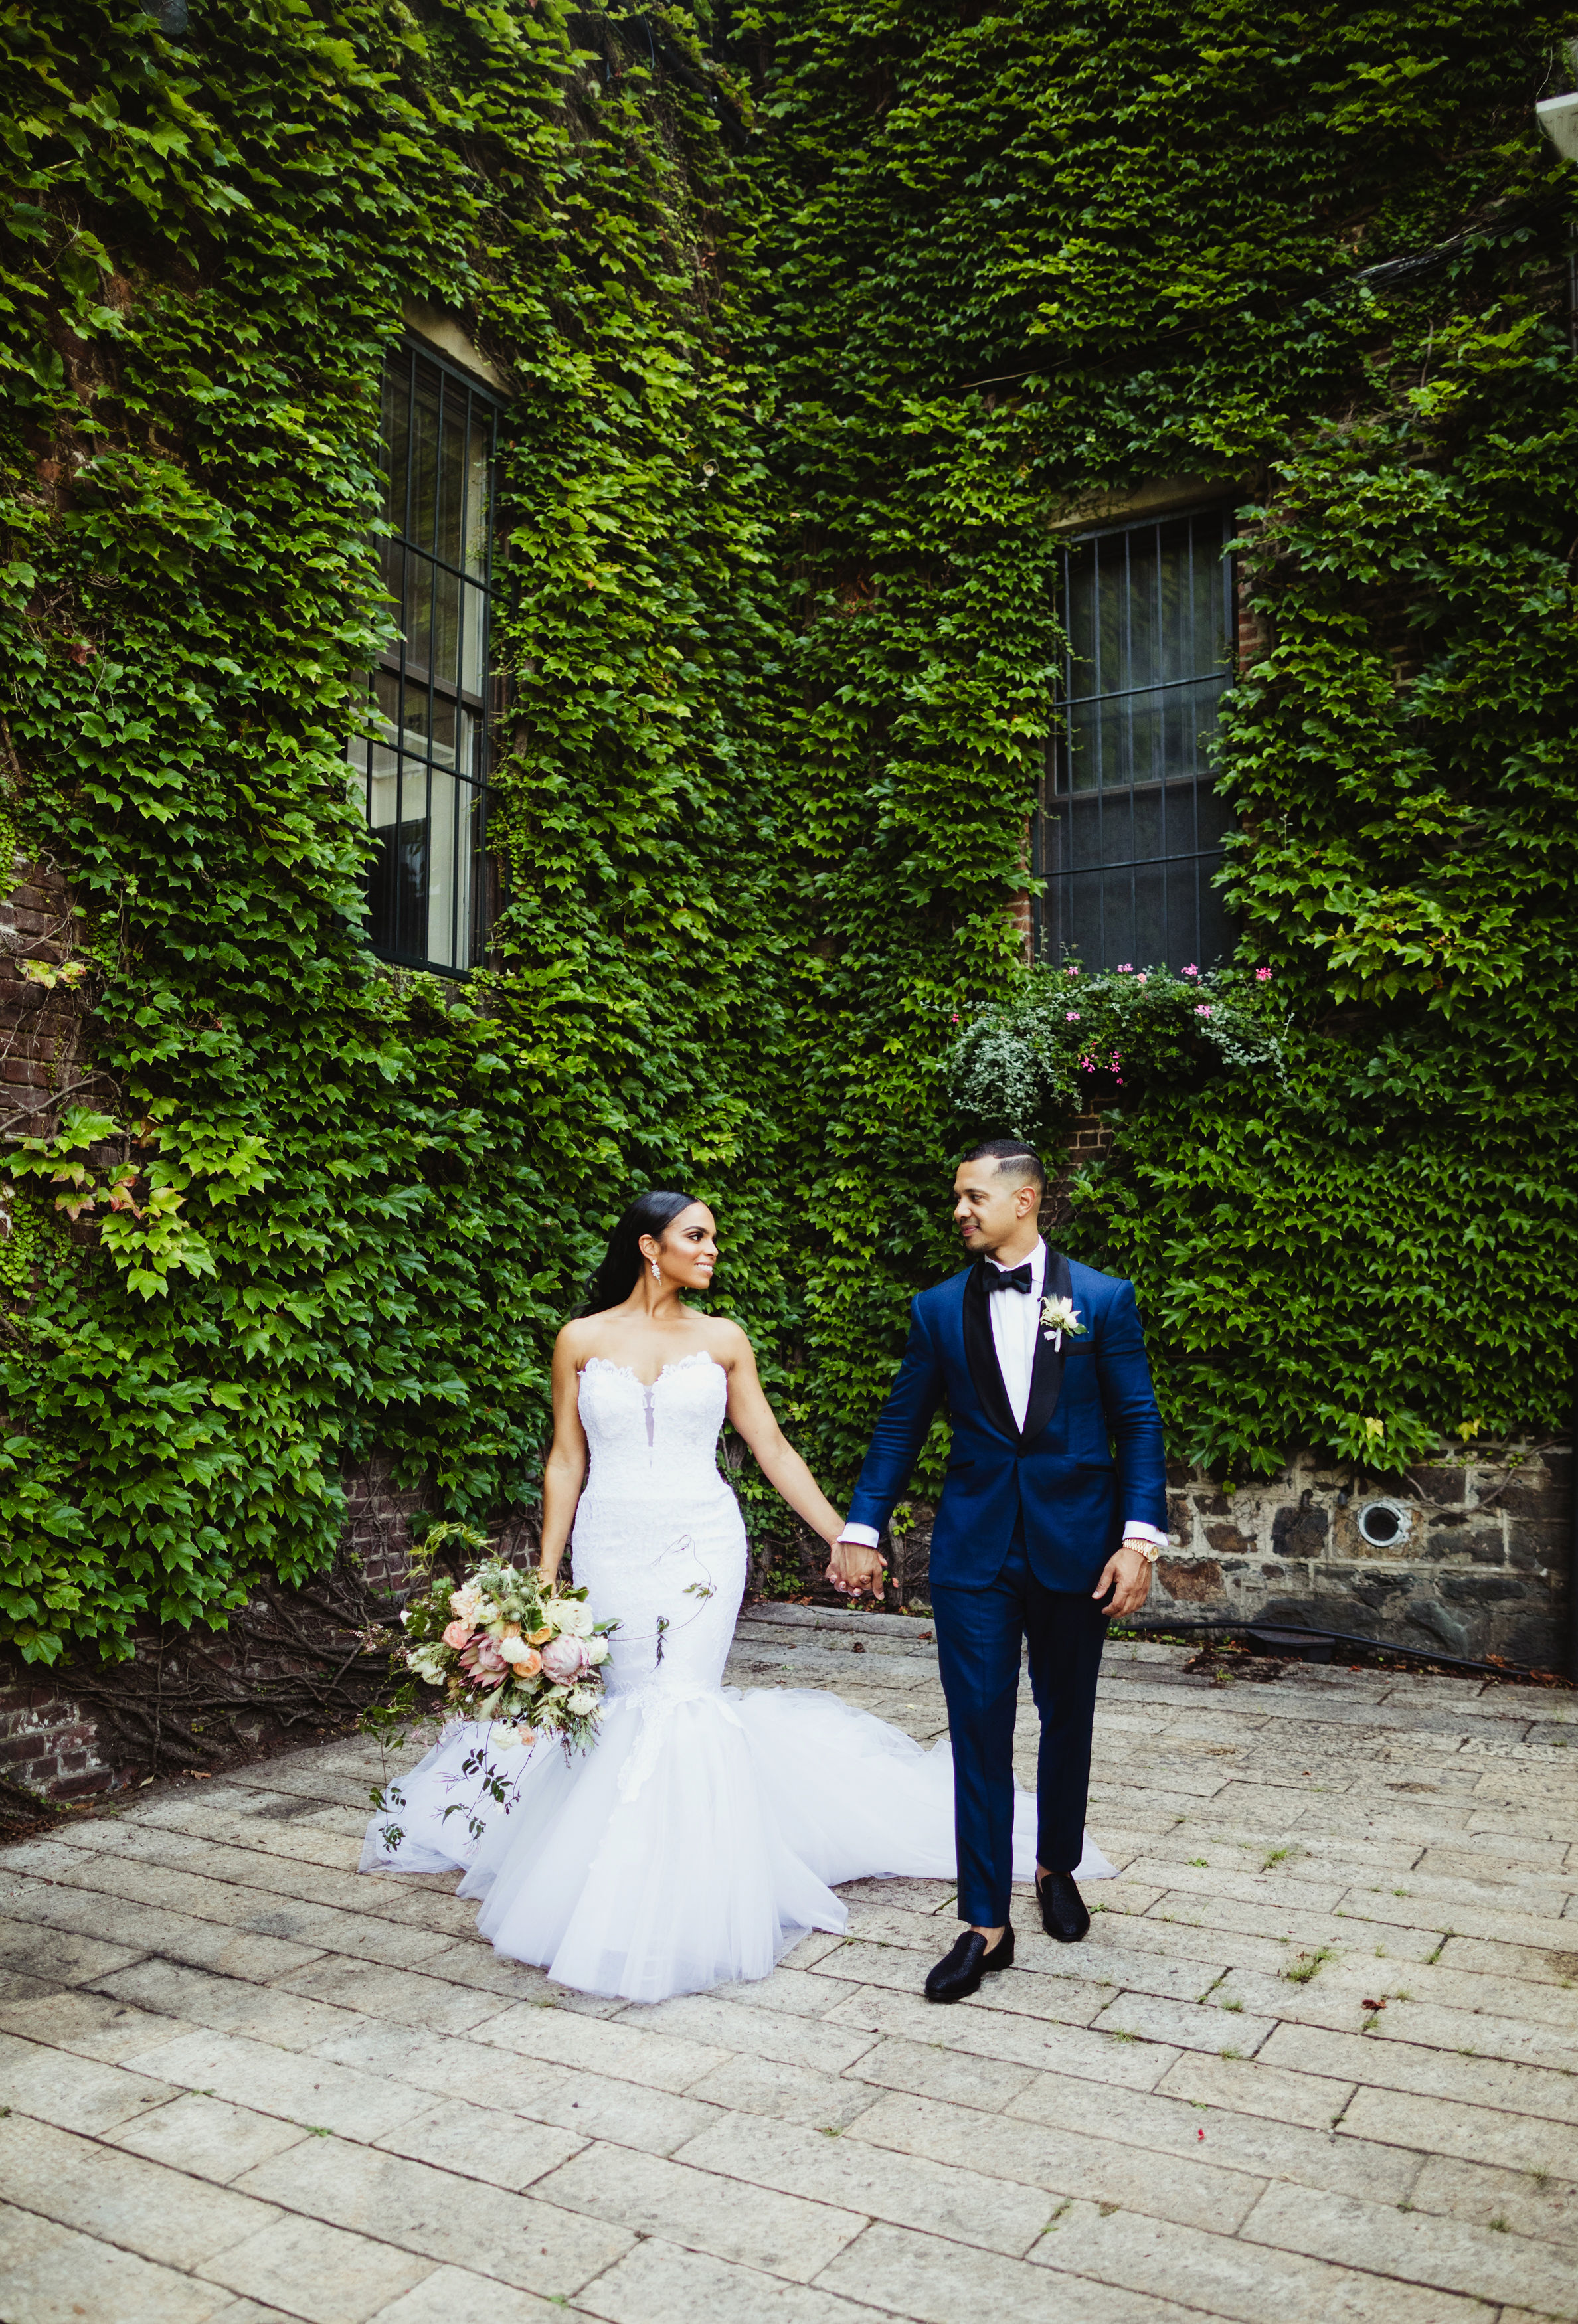 bride and groom walking together against greenery backdrop